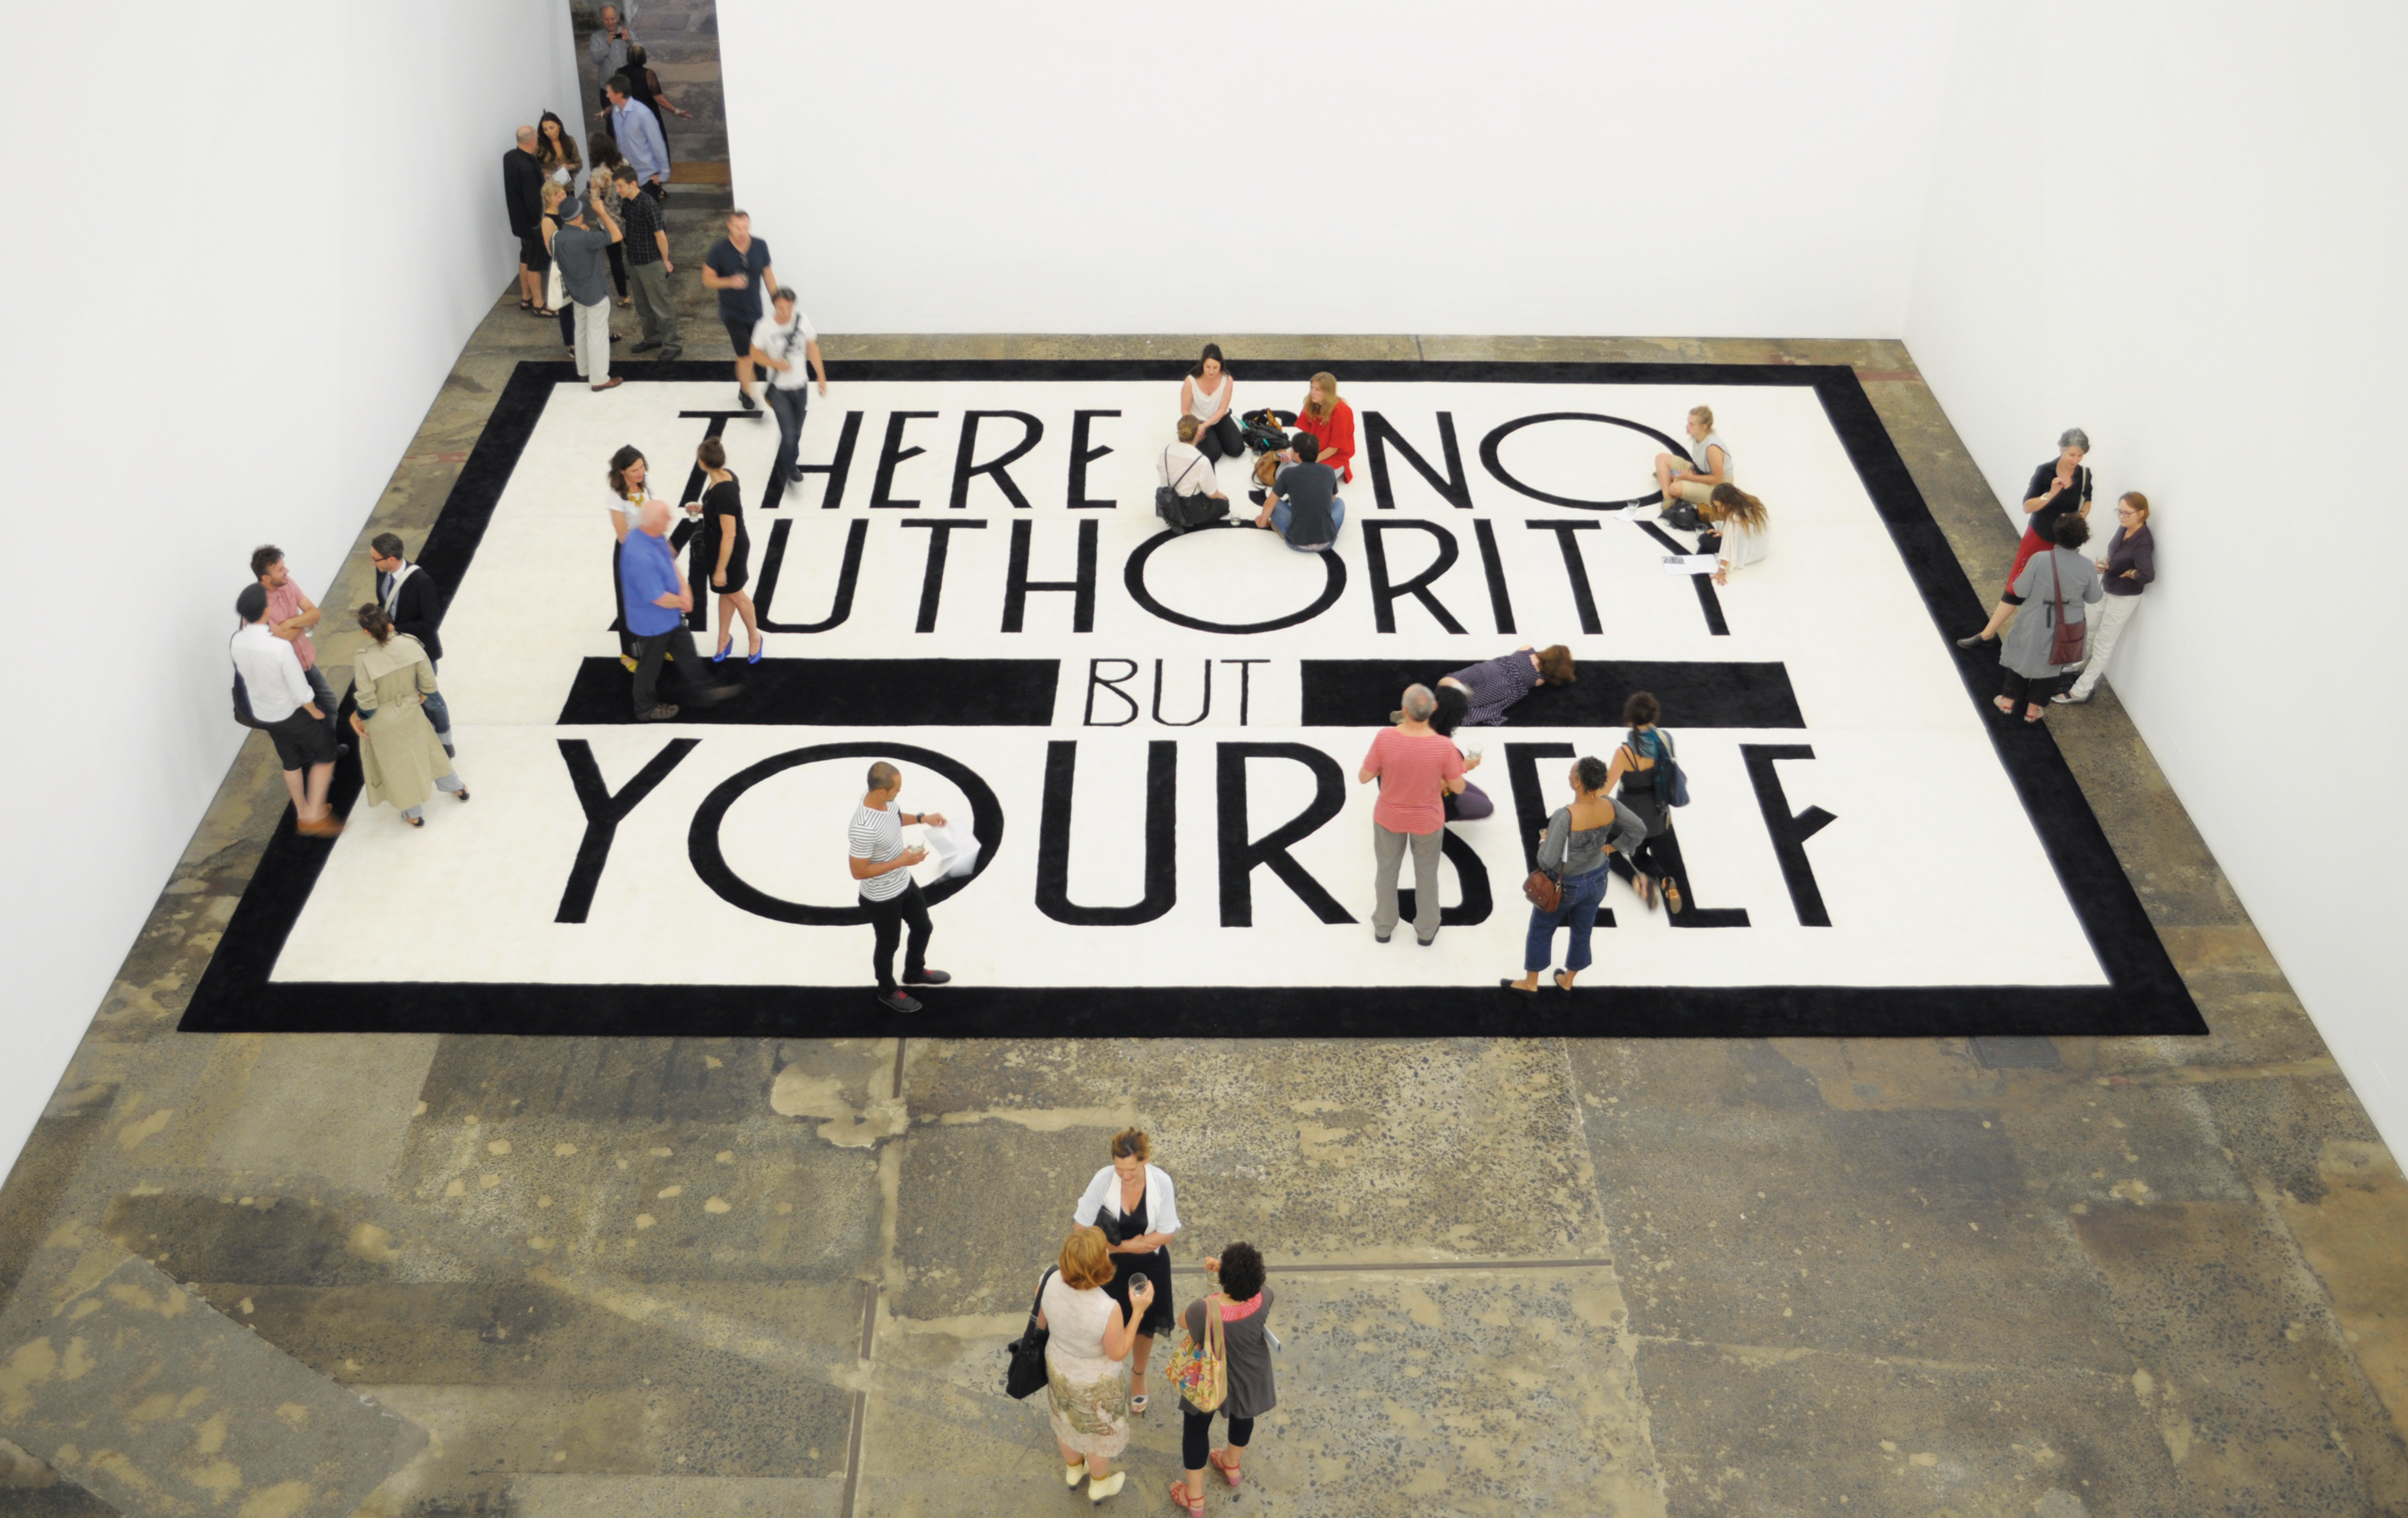 Marco Fusinato, THERE IS NO AUTHORITY, 2012, 100% New Zealand wool rug, monitor, camera, 30' x 39' Installation view at Anna Schwartz Gallery, Sydney. Lyon Housemuseum Collection.